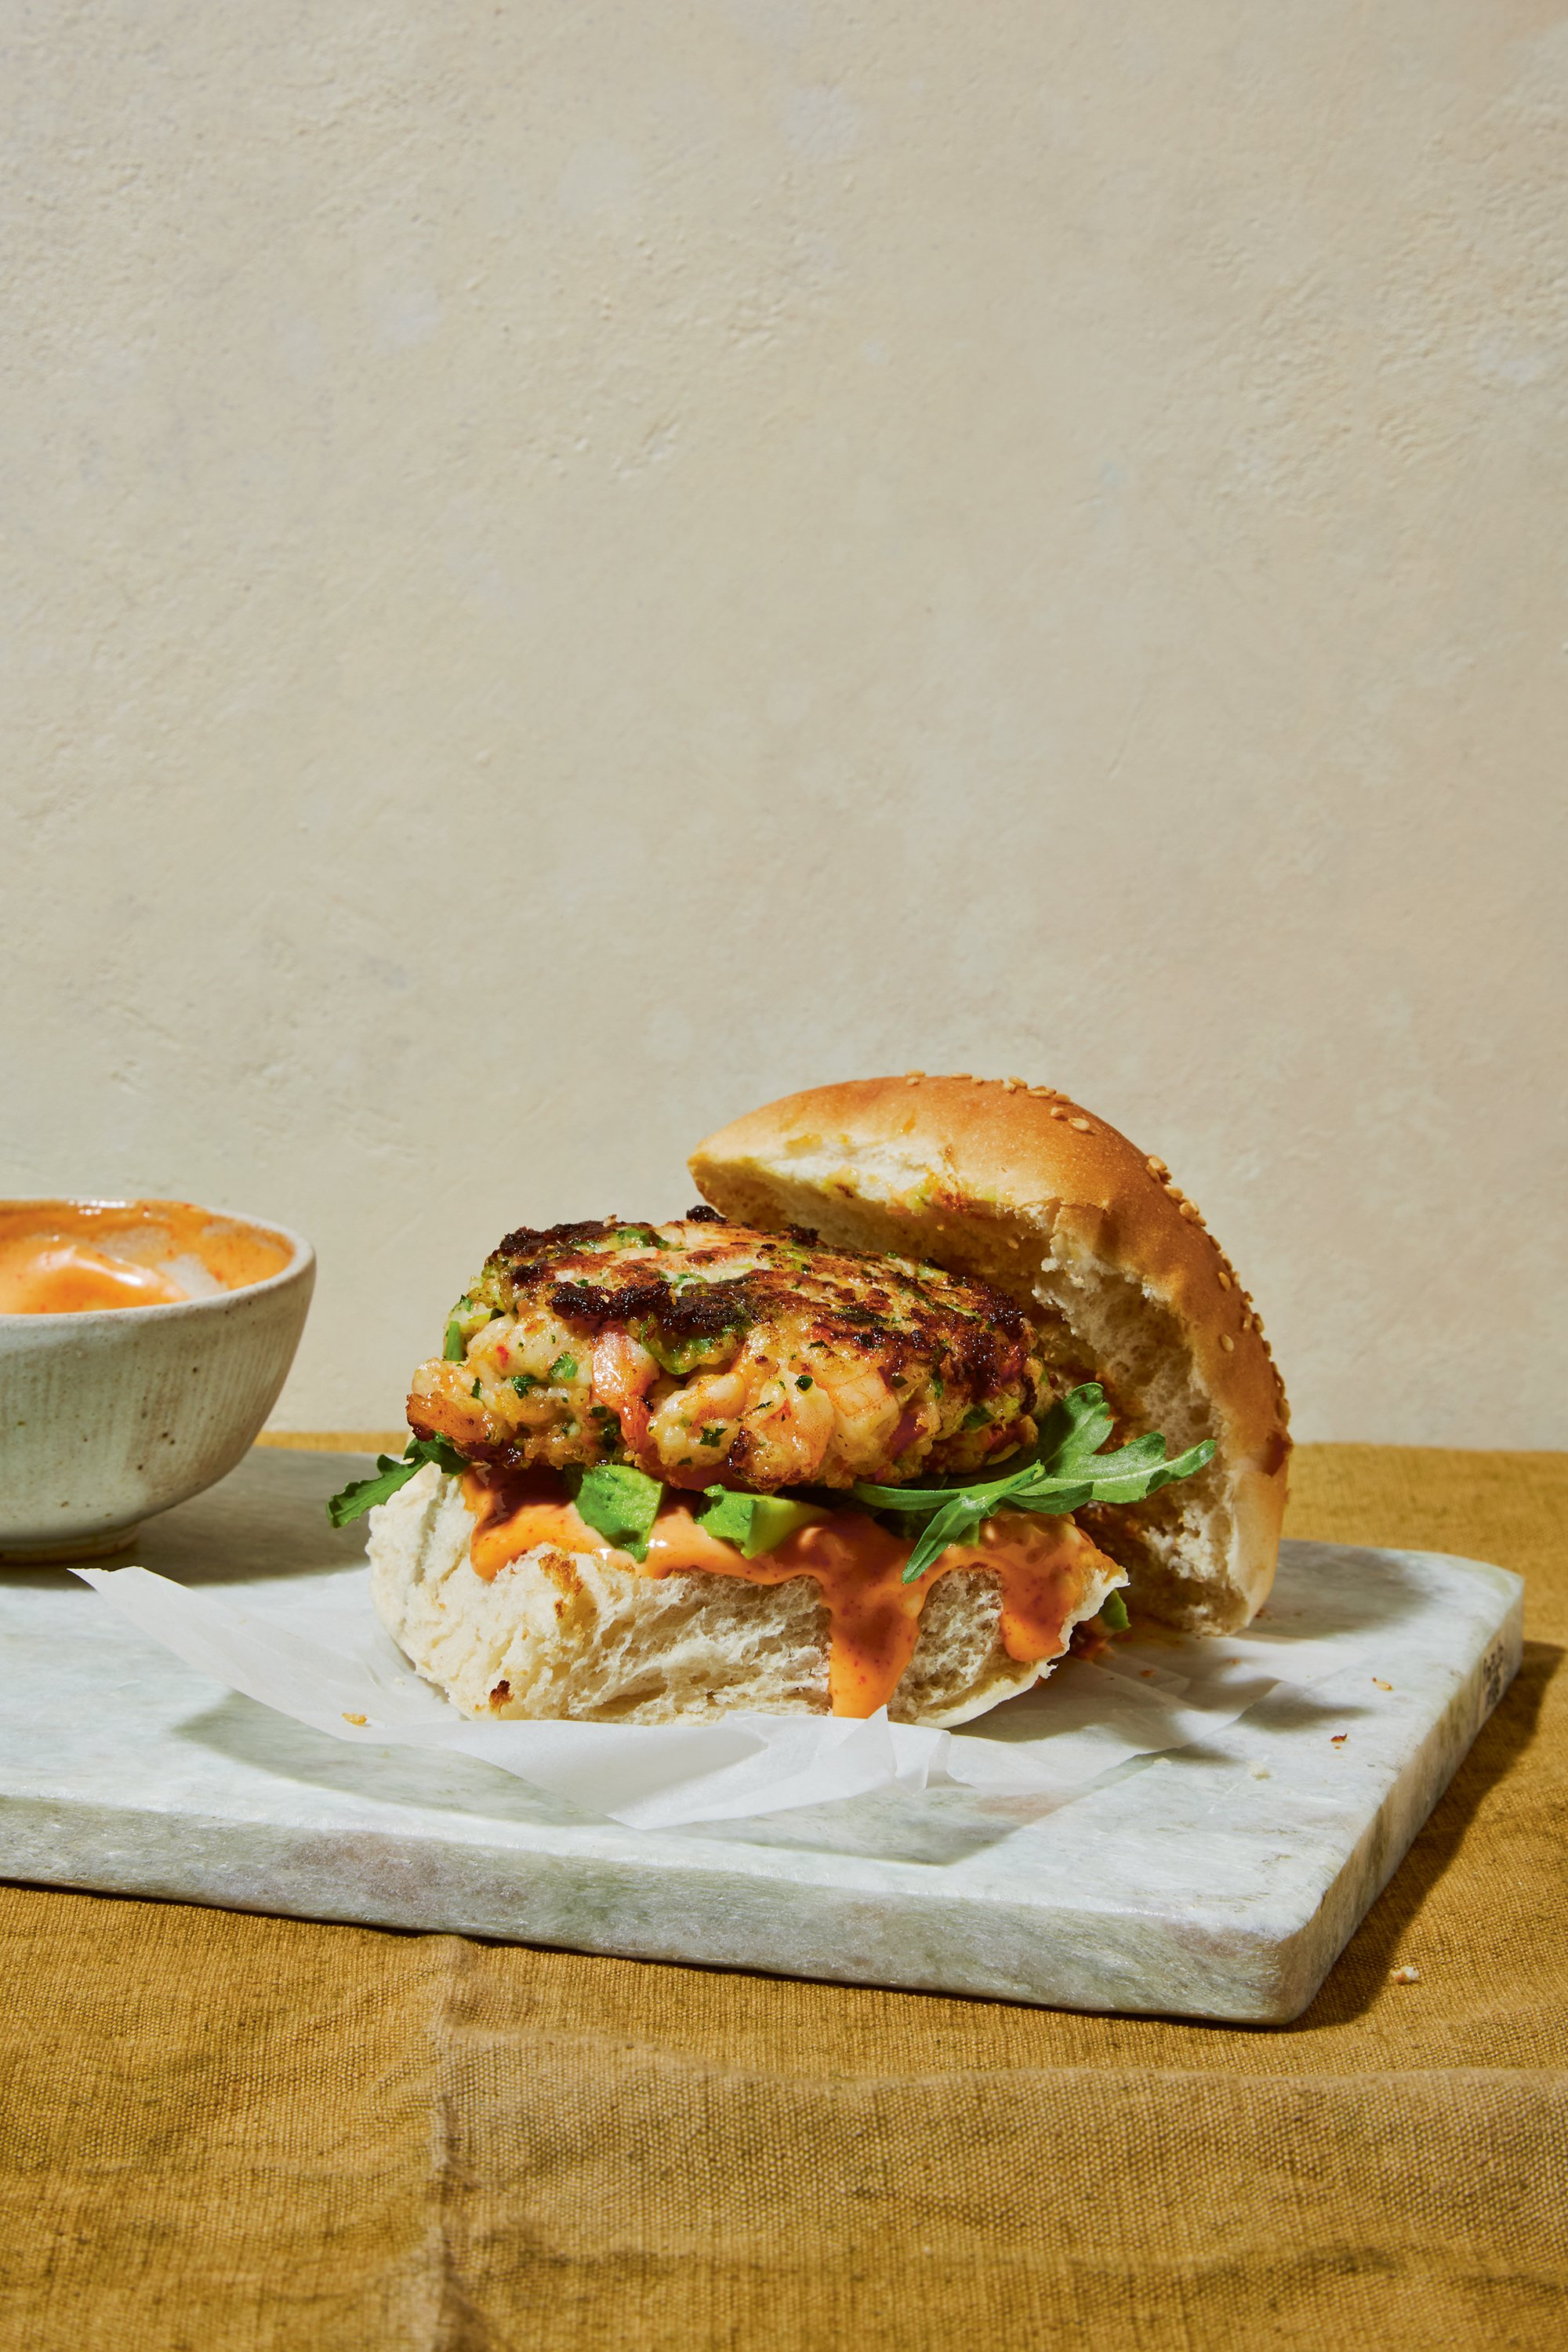 Shrimp burger recipe with sriracha mayo